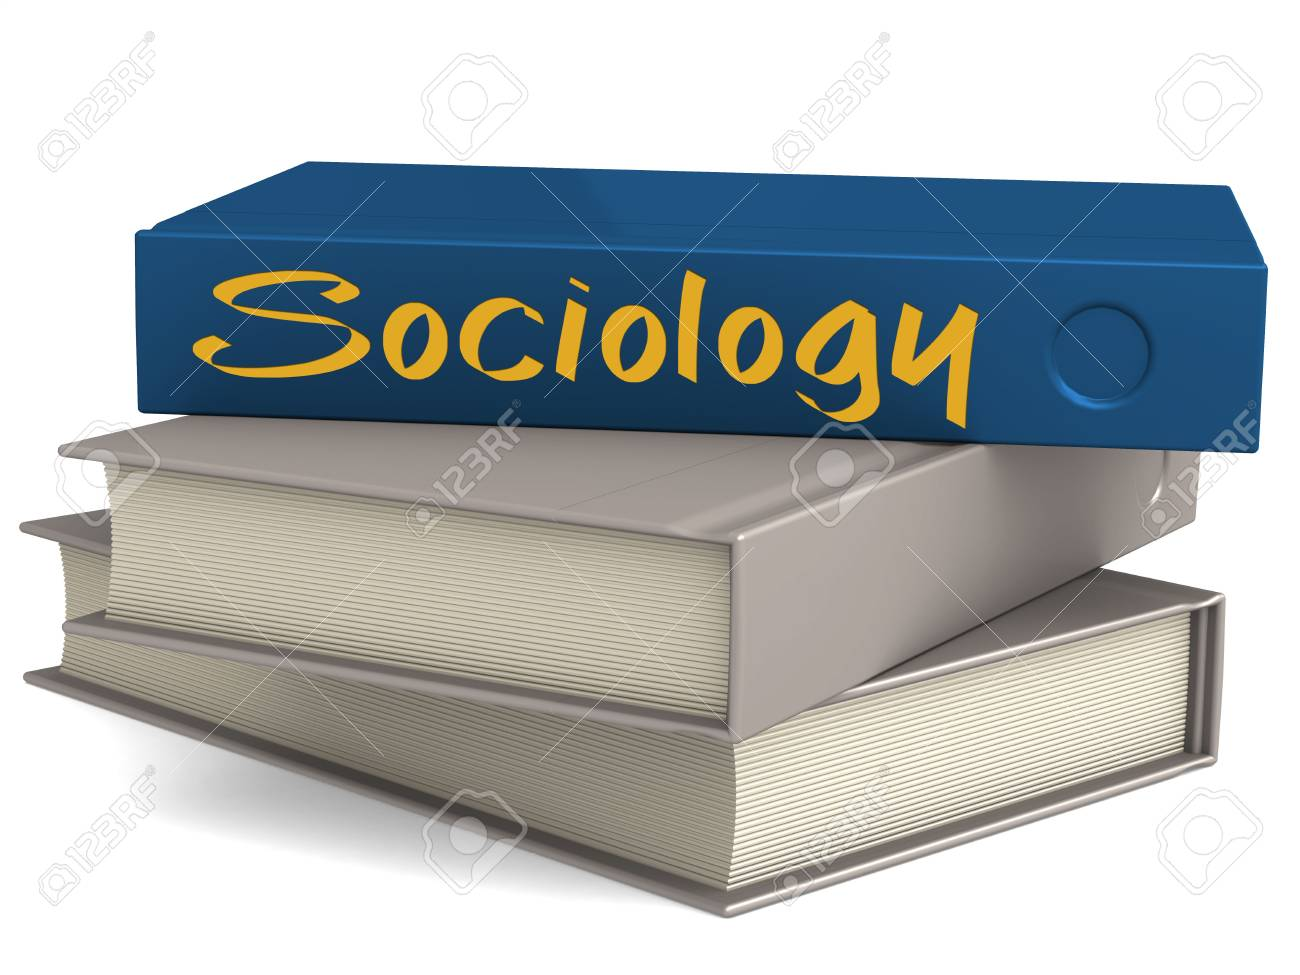 Hard Cover Books With Sociology Word 3d Rendering Stock Photo Picture And Royalty Free Image Image 92037441